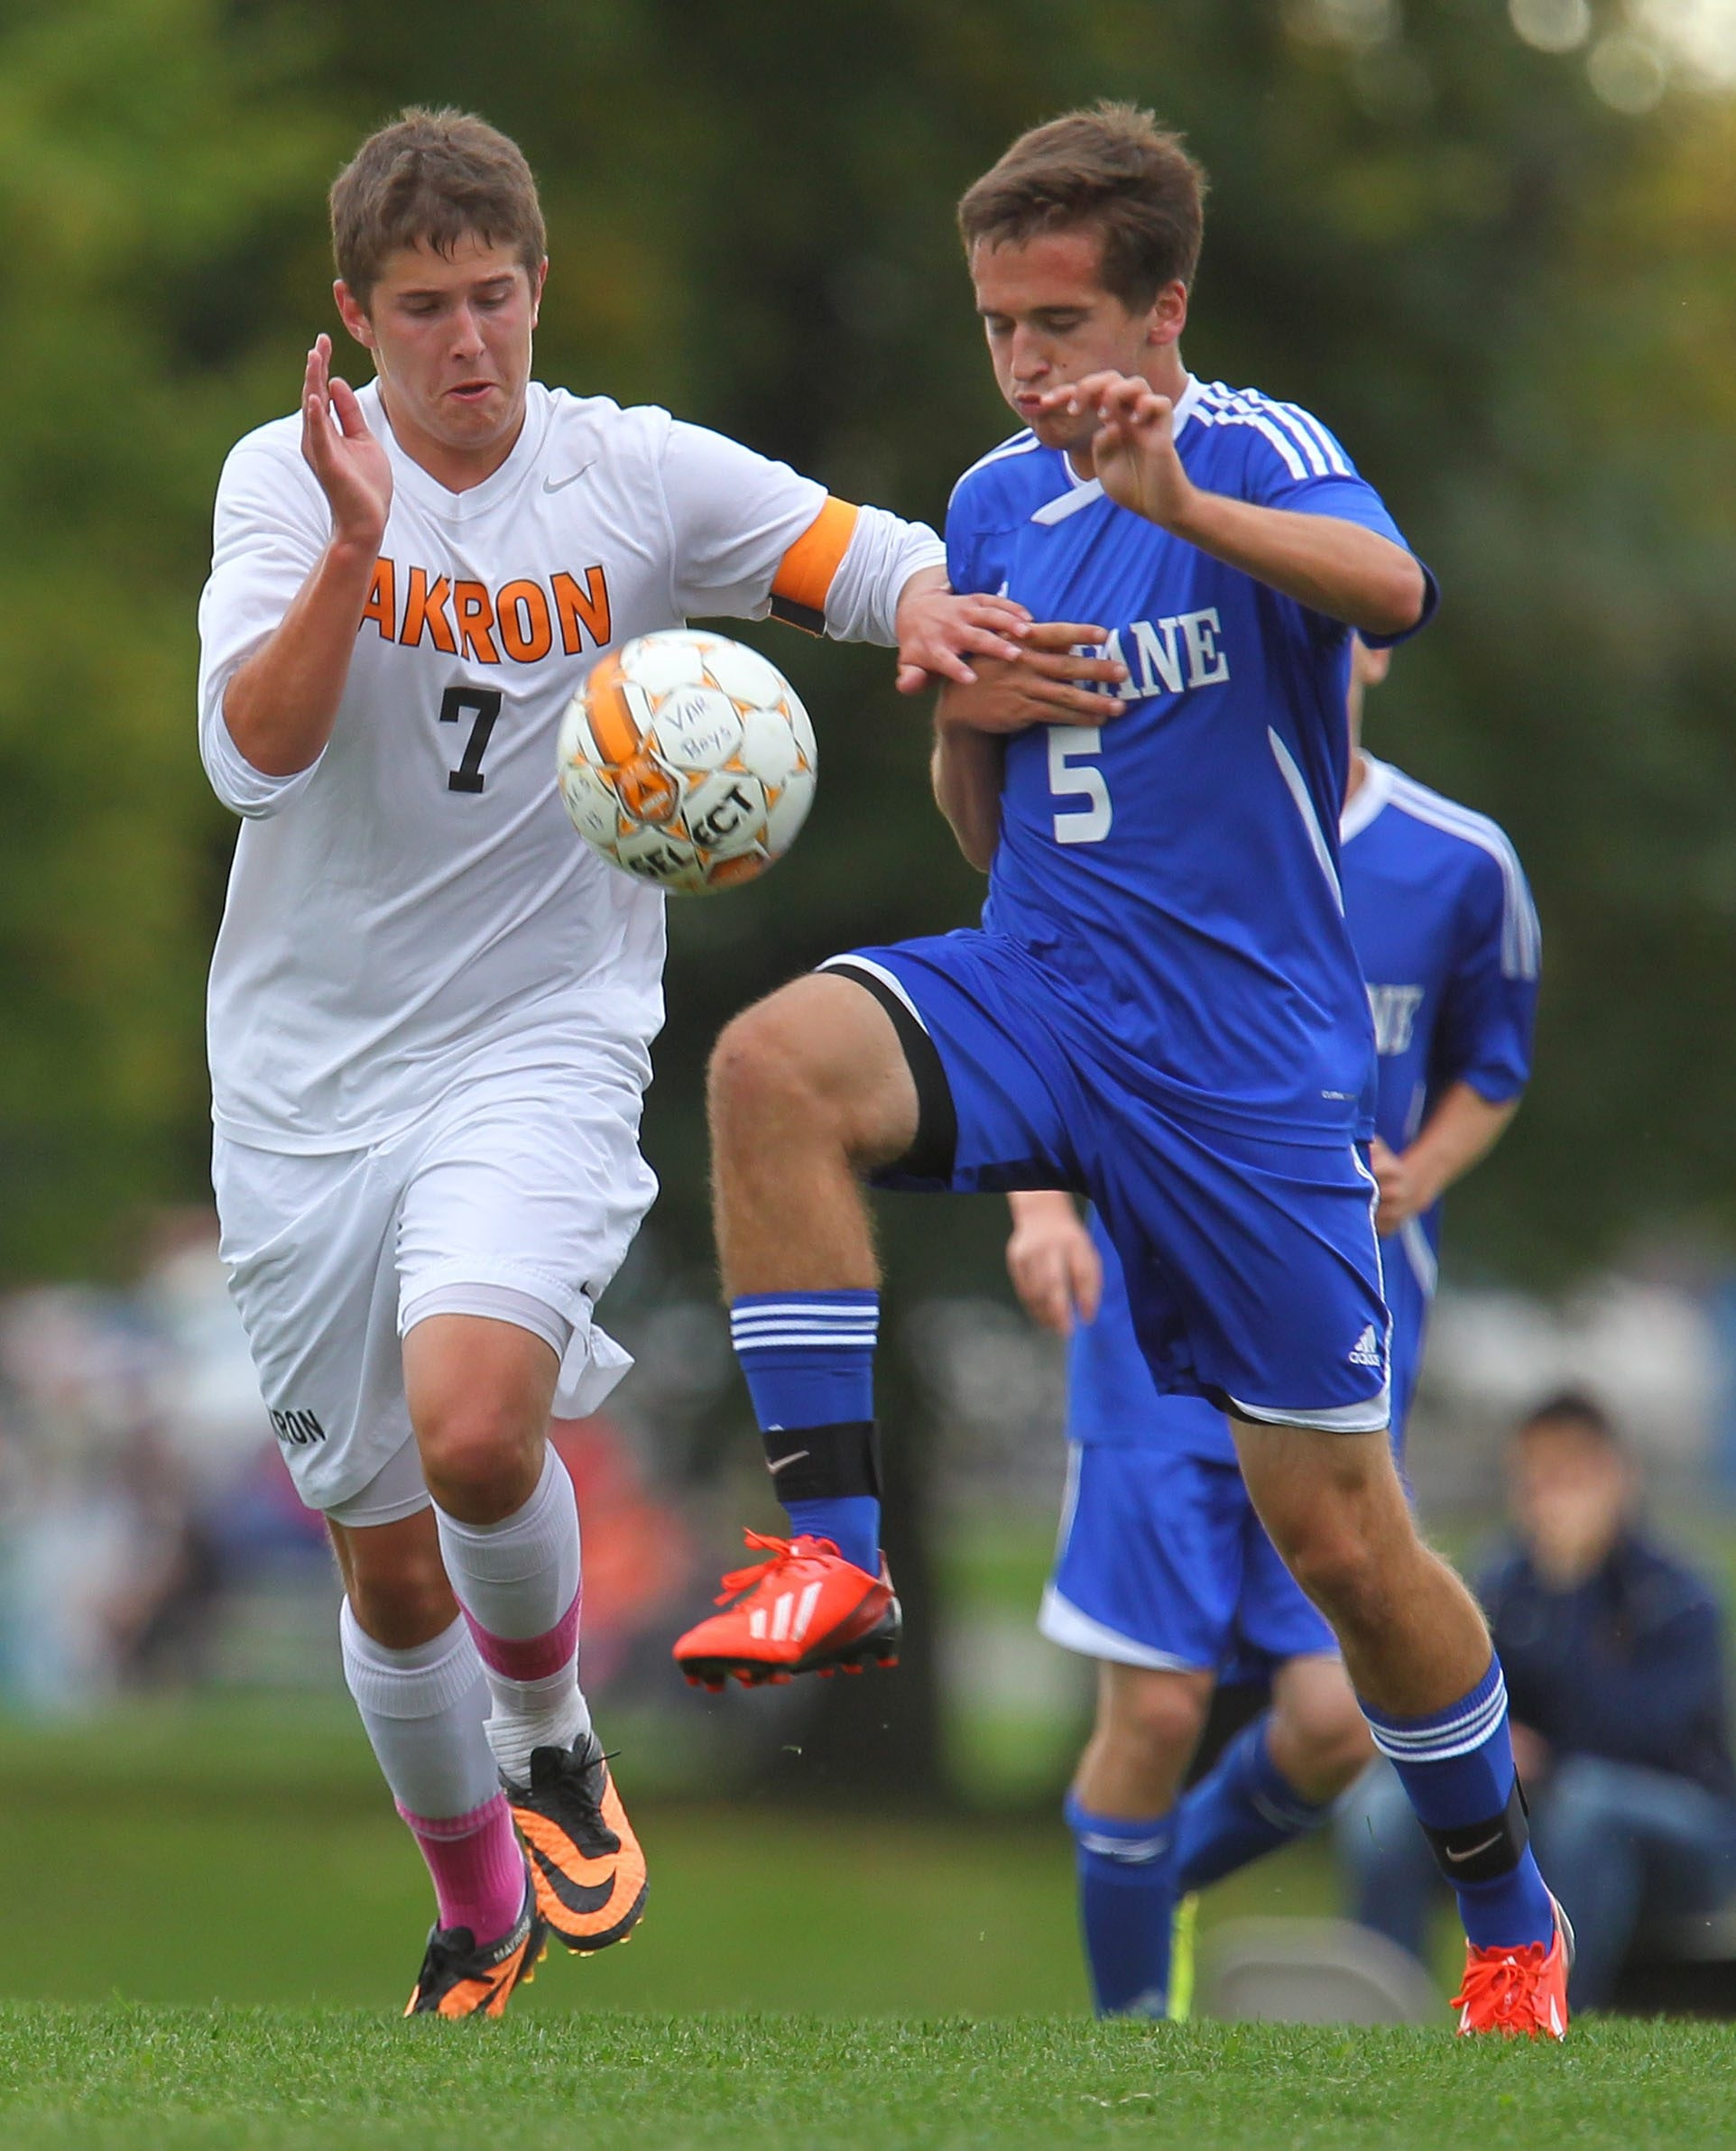 Akron's Chris Mayrose (7) battles for a loose ball with Newfane's Mike Lekanka during a boys soccer match at Akron on Thursday. Akron won, 3-0.